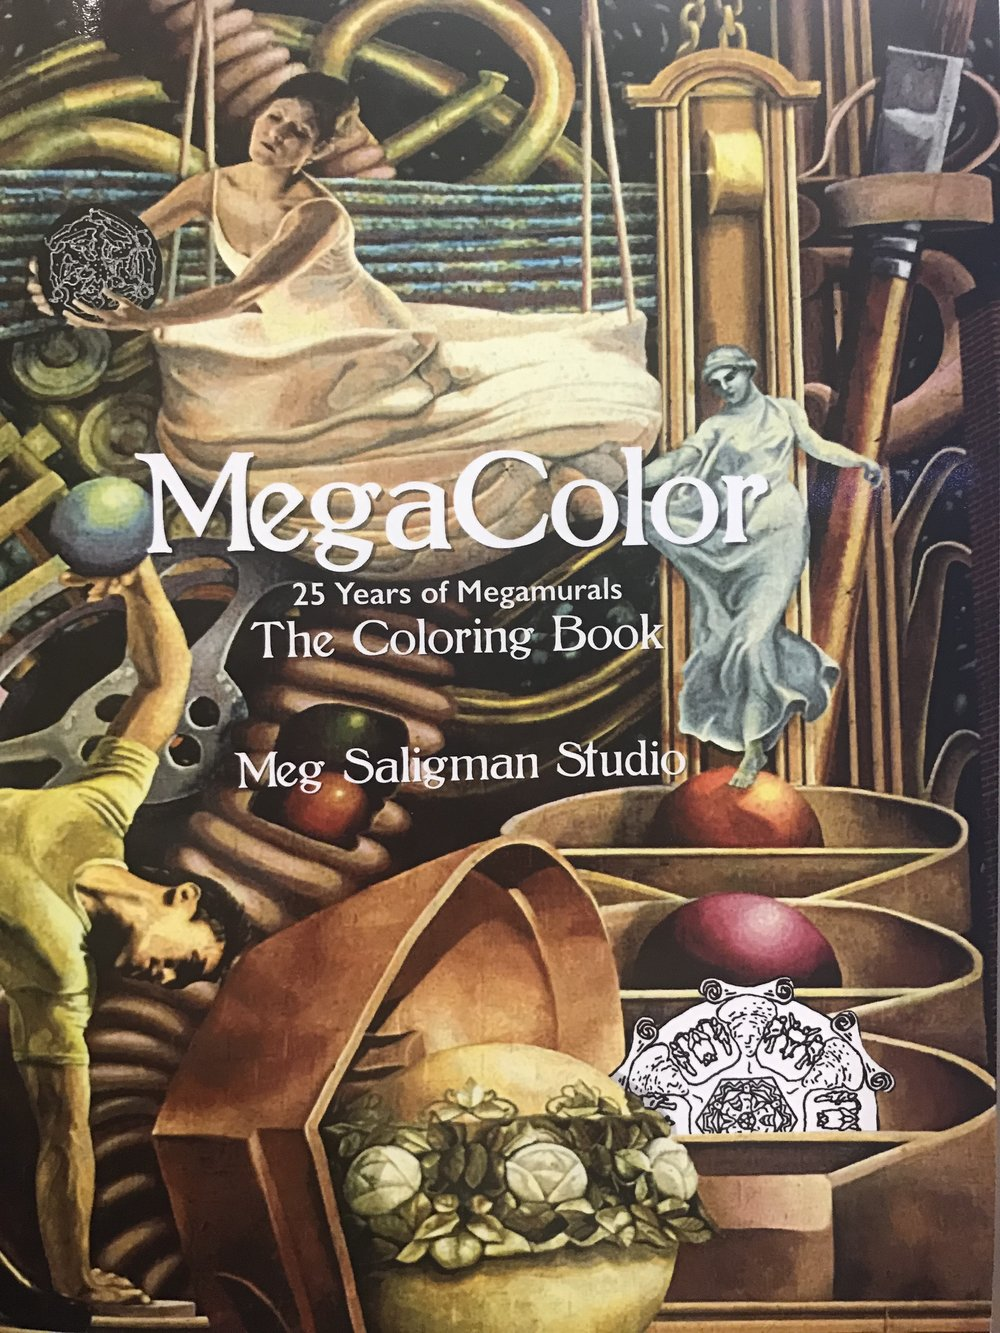 megacolor cover.jpg